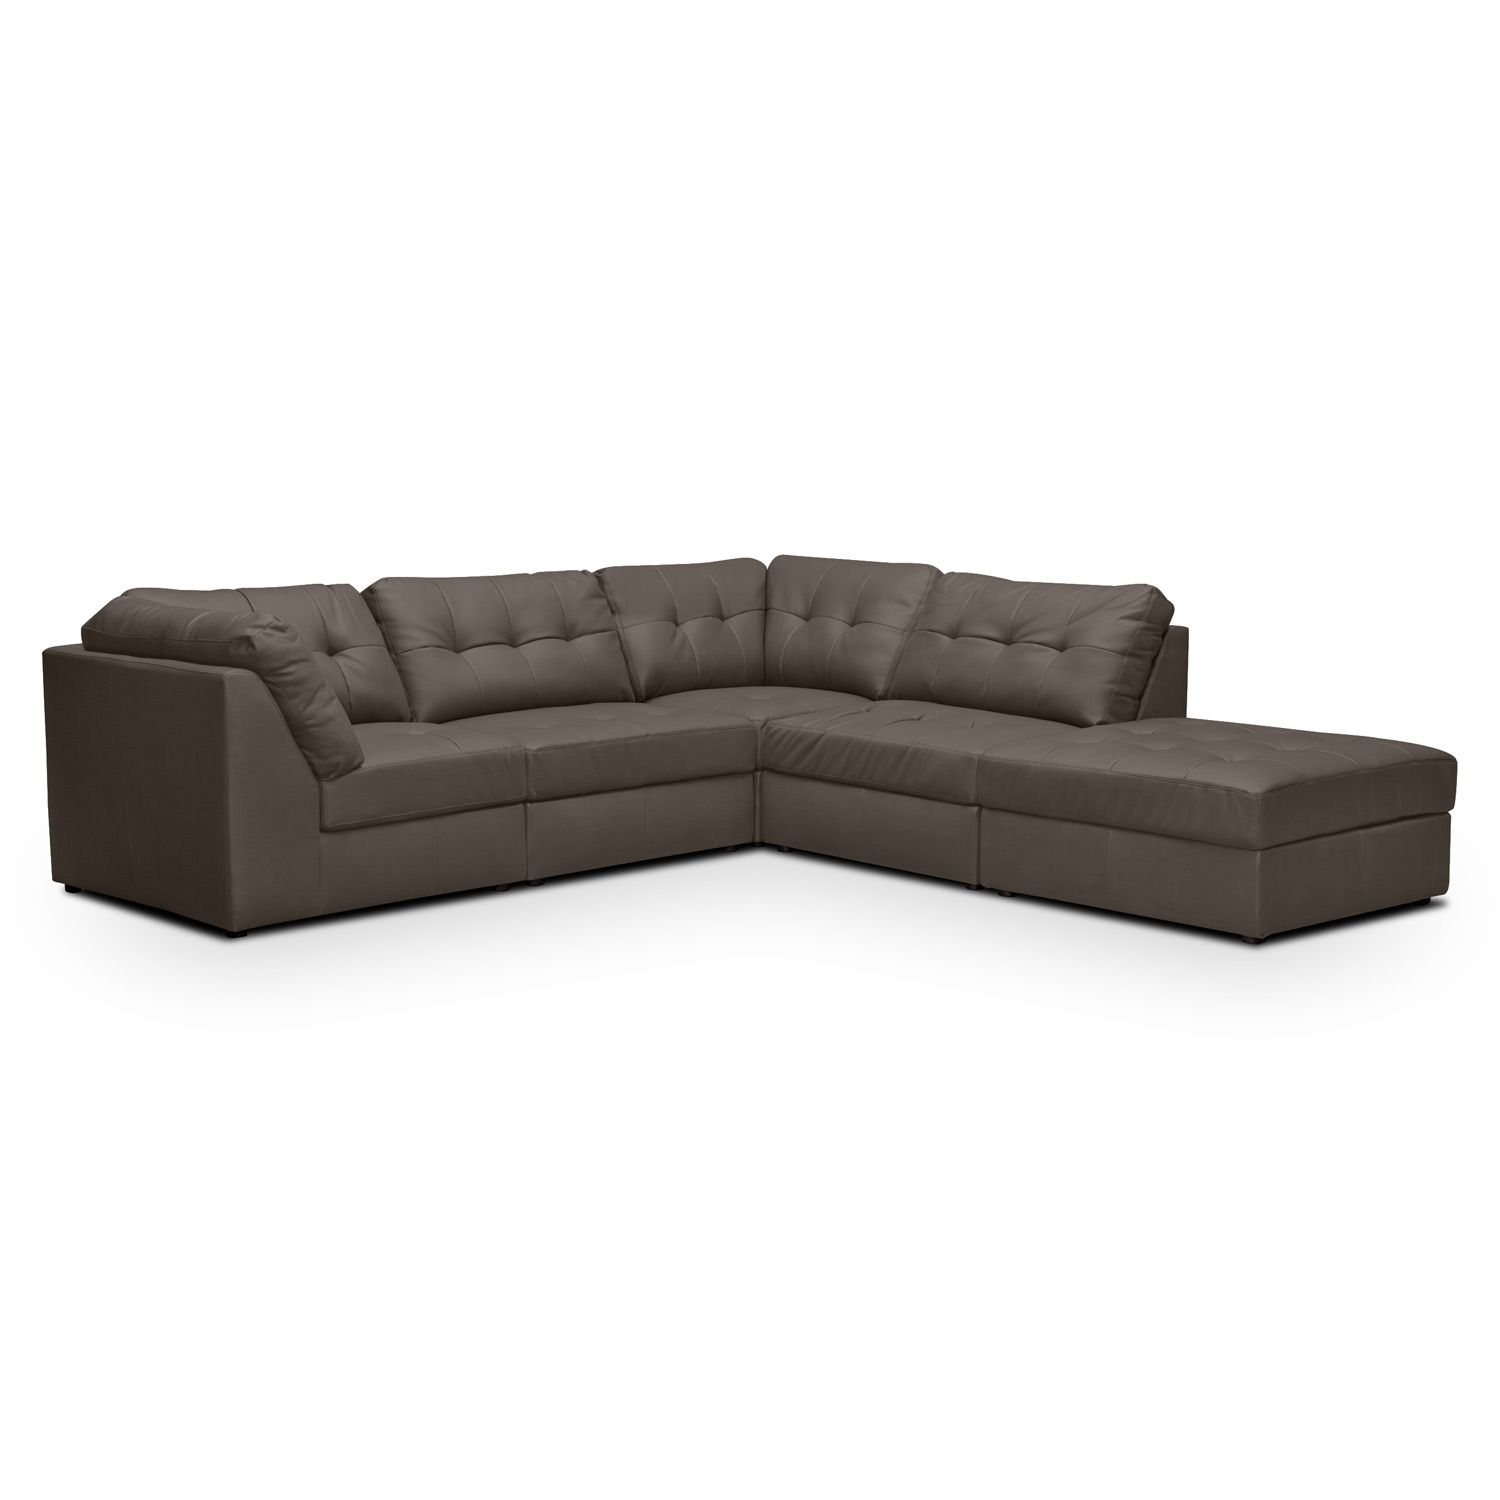 $1099 99 Aventura III Leather 5 Pc Sectional Value City